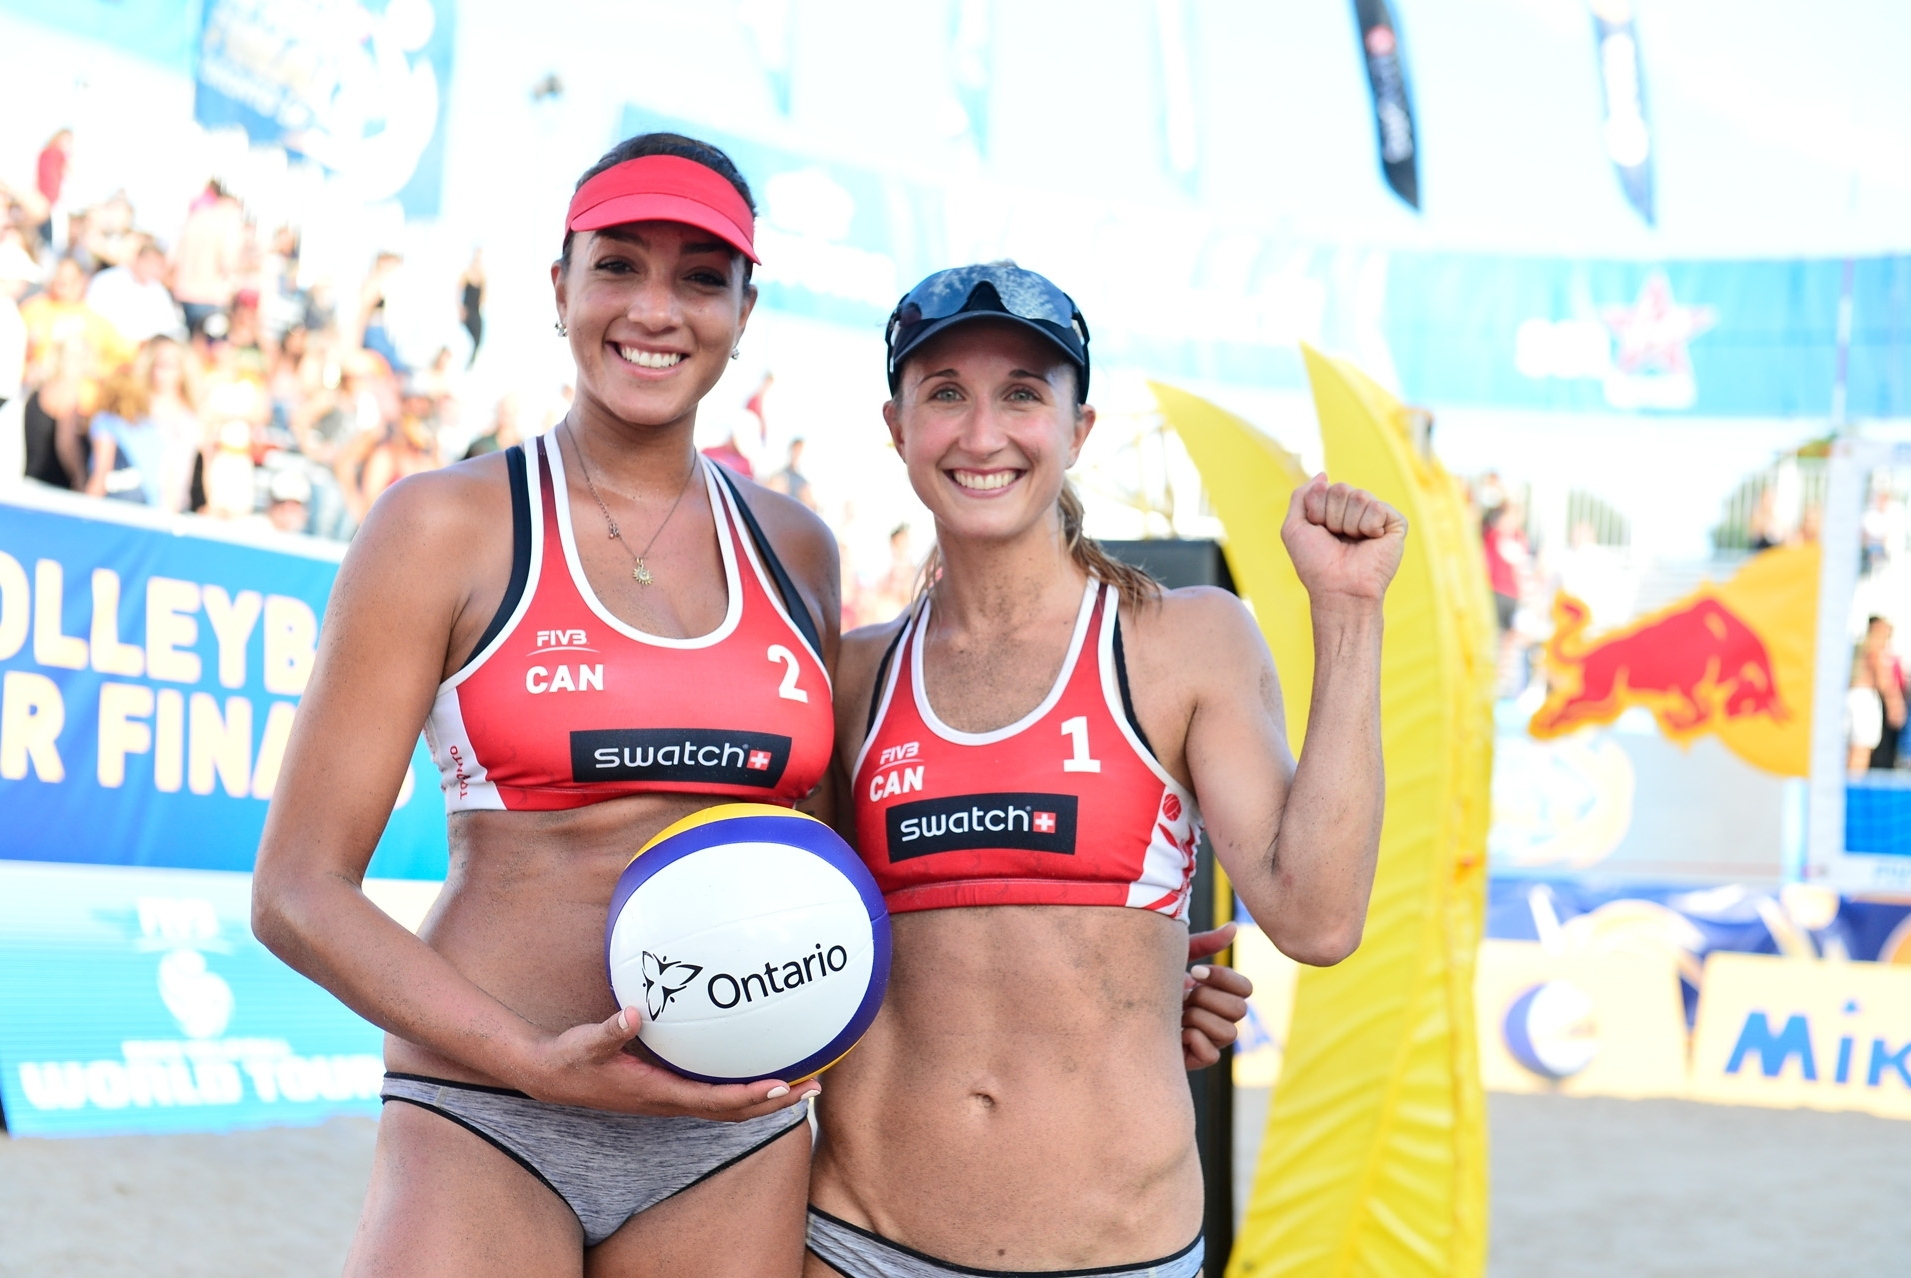 Brandie and Heather all smiles after their victory. Photocredit. Bernhard Horst.